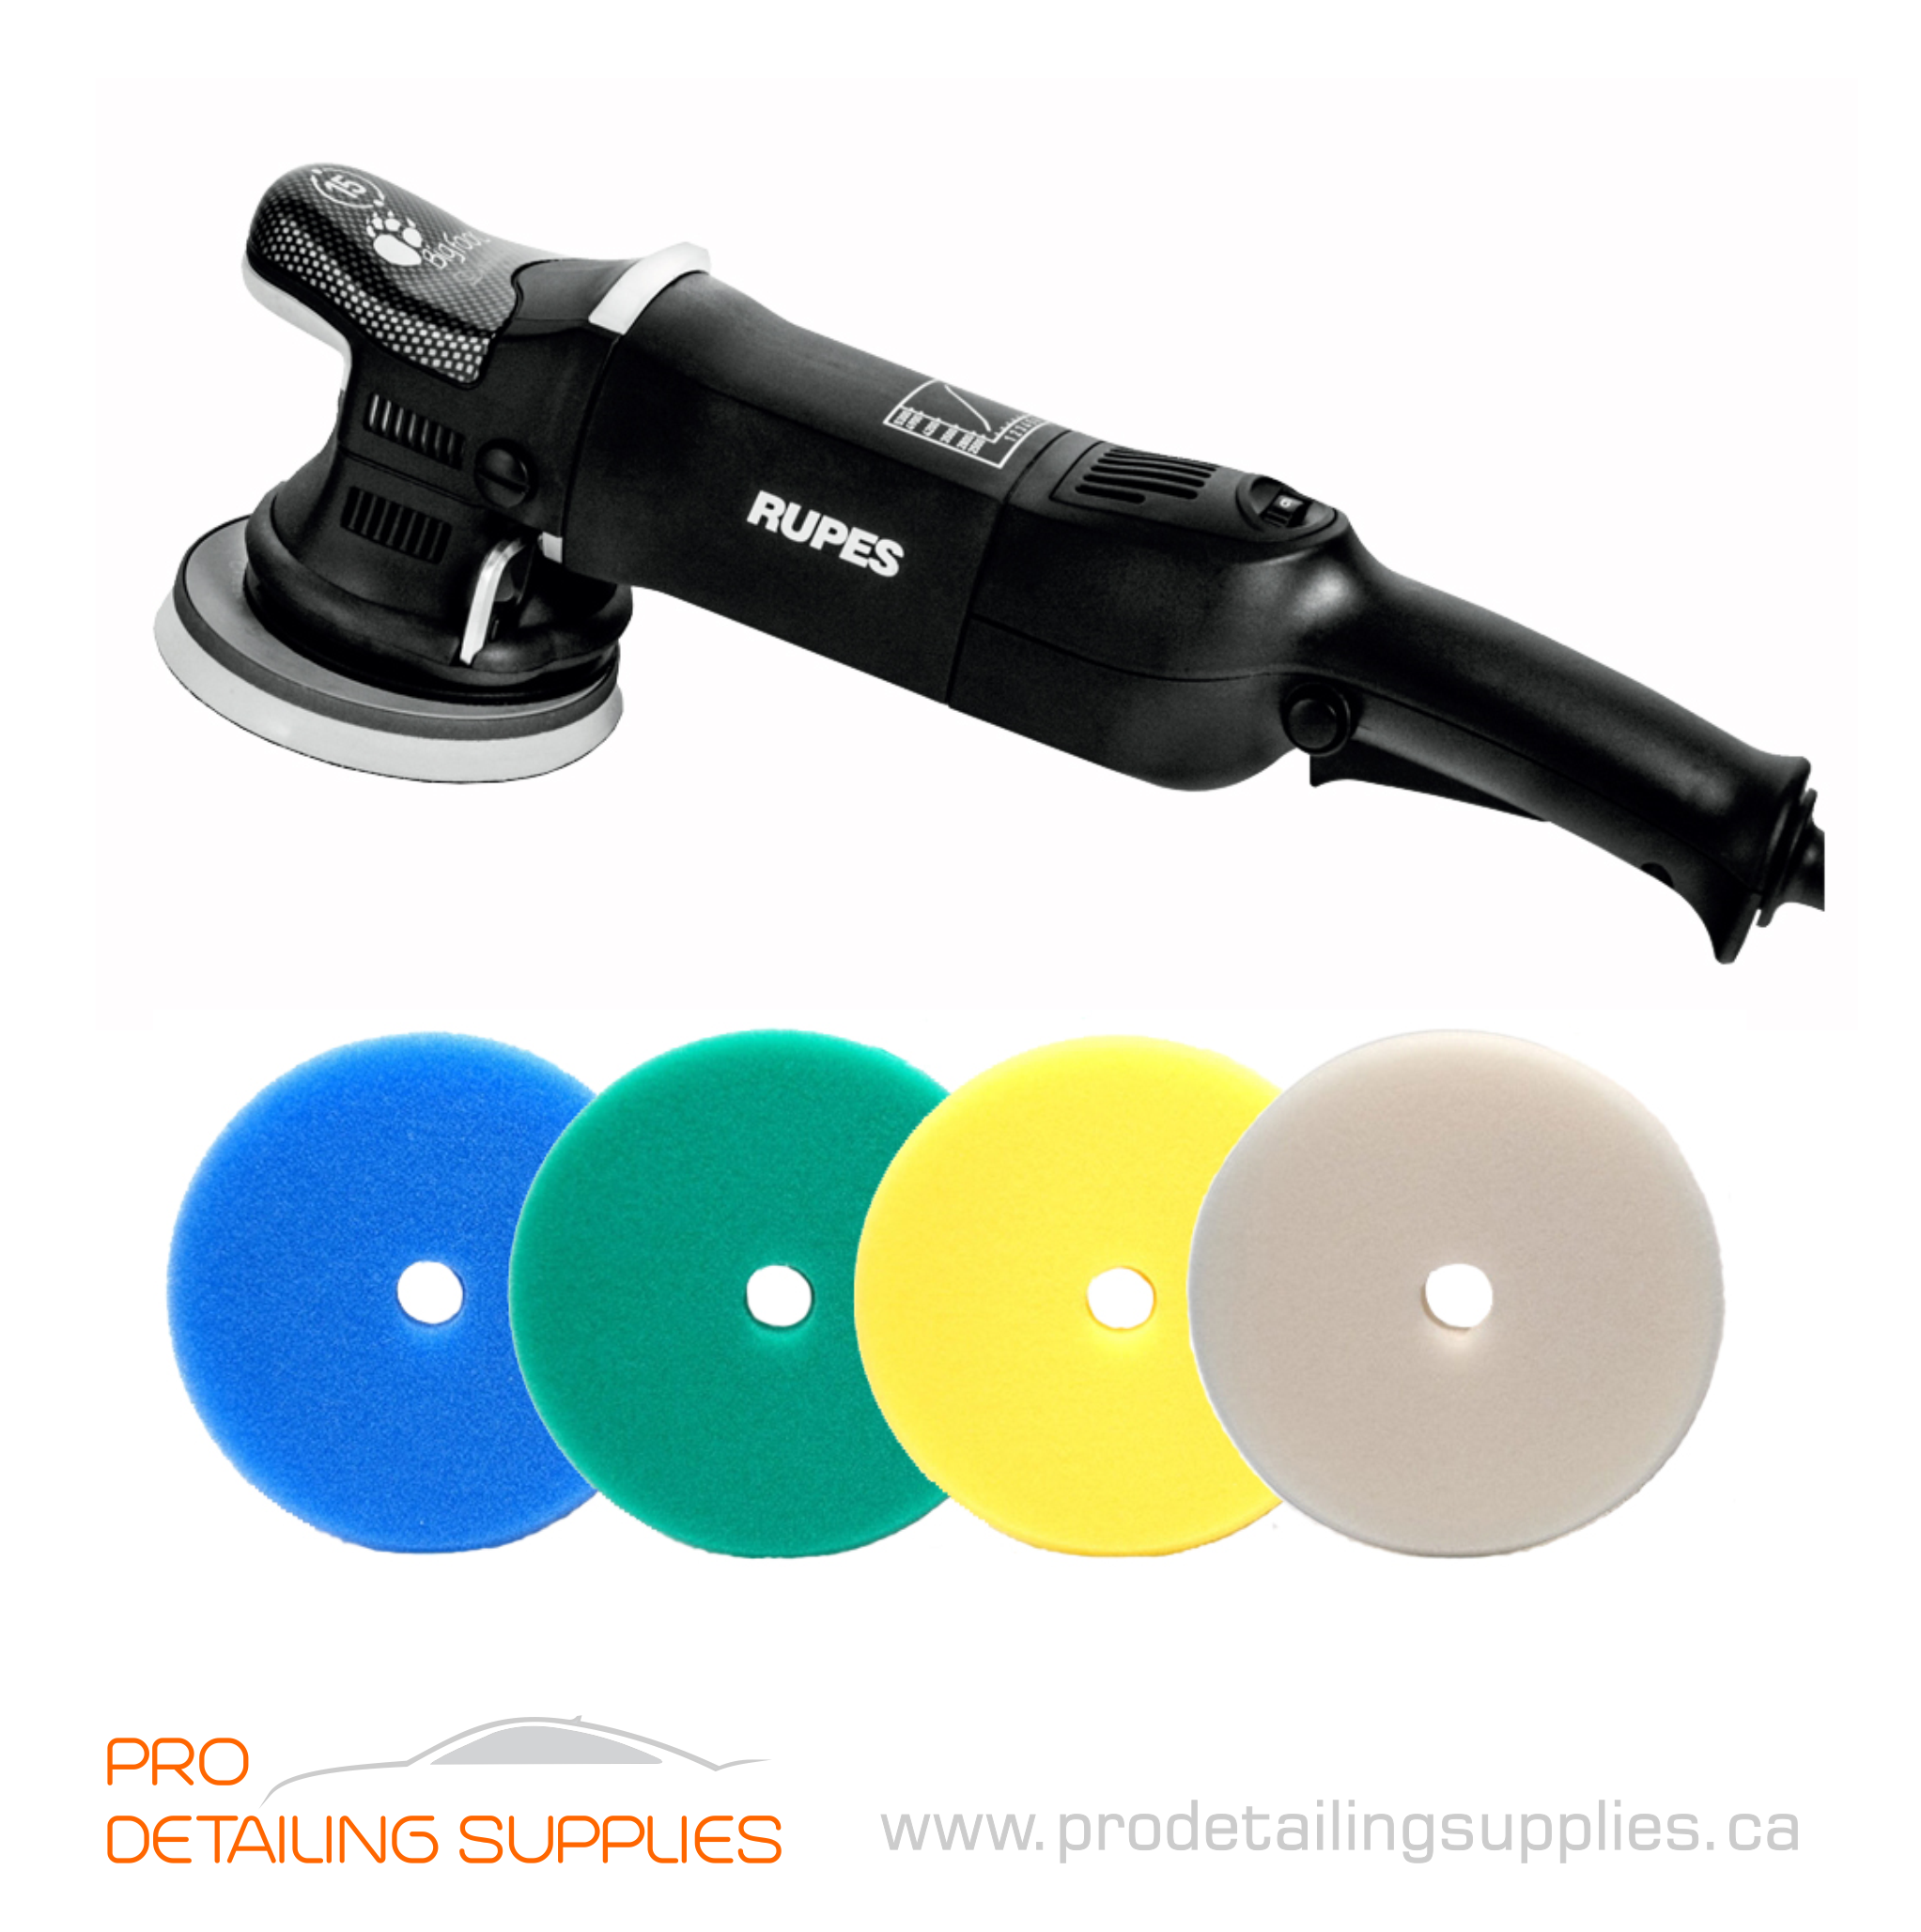 Rupes LHR 15 MARK III Polisher with Pads | prodetailingsupplies